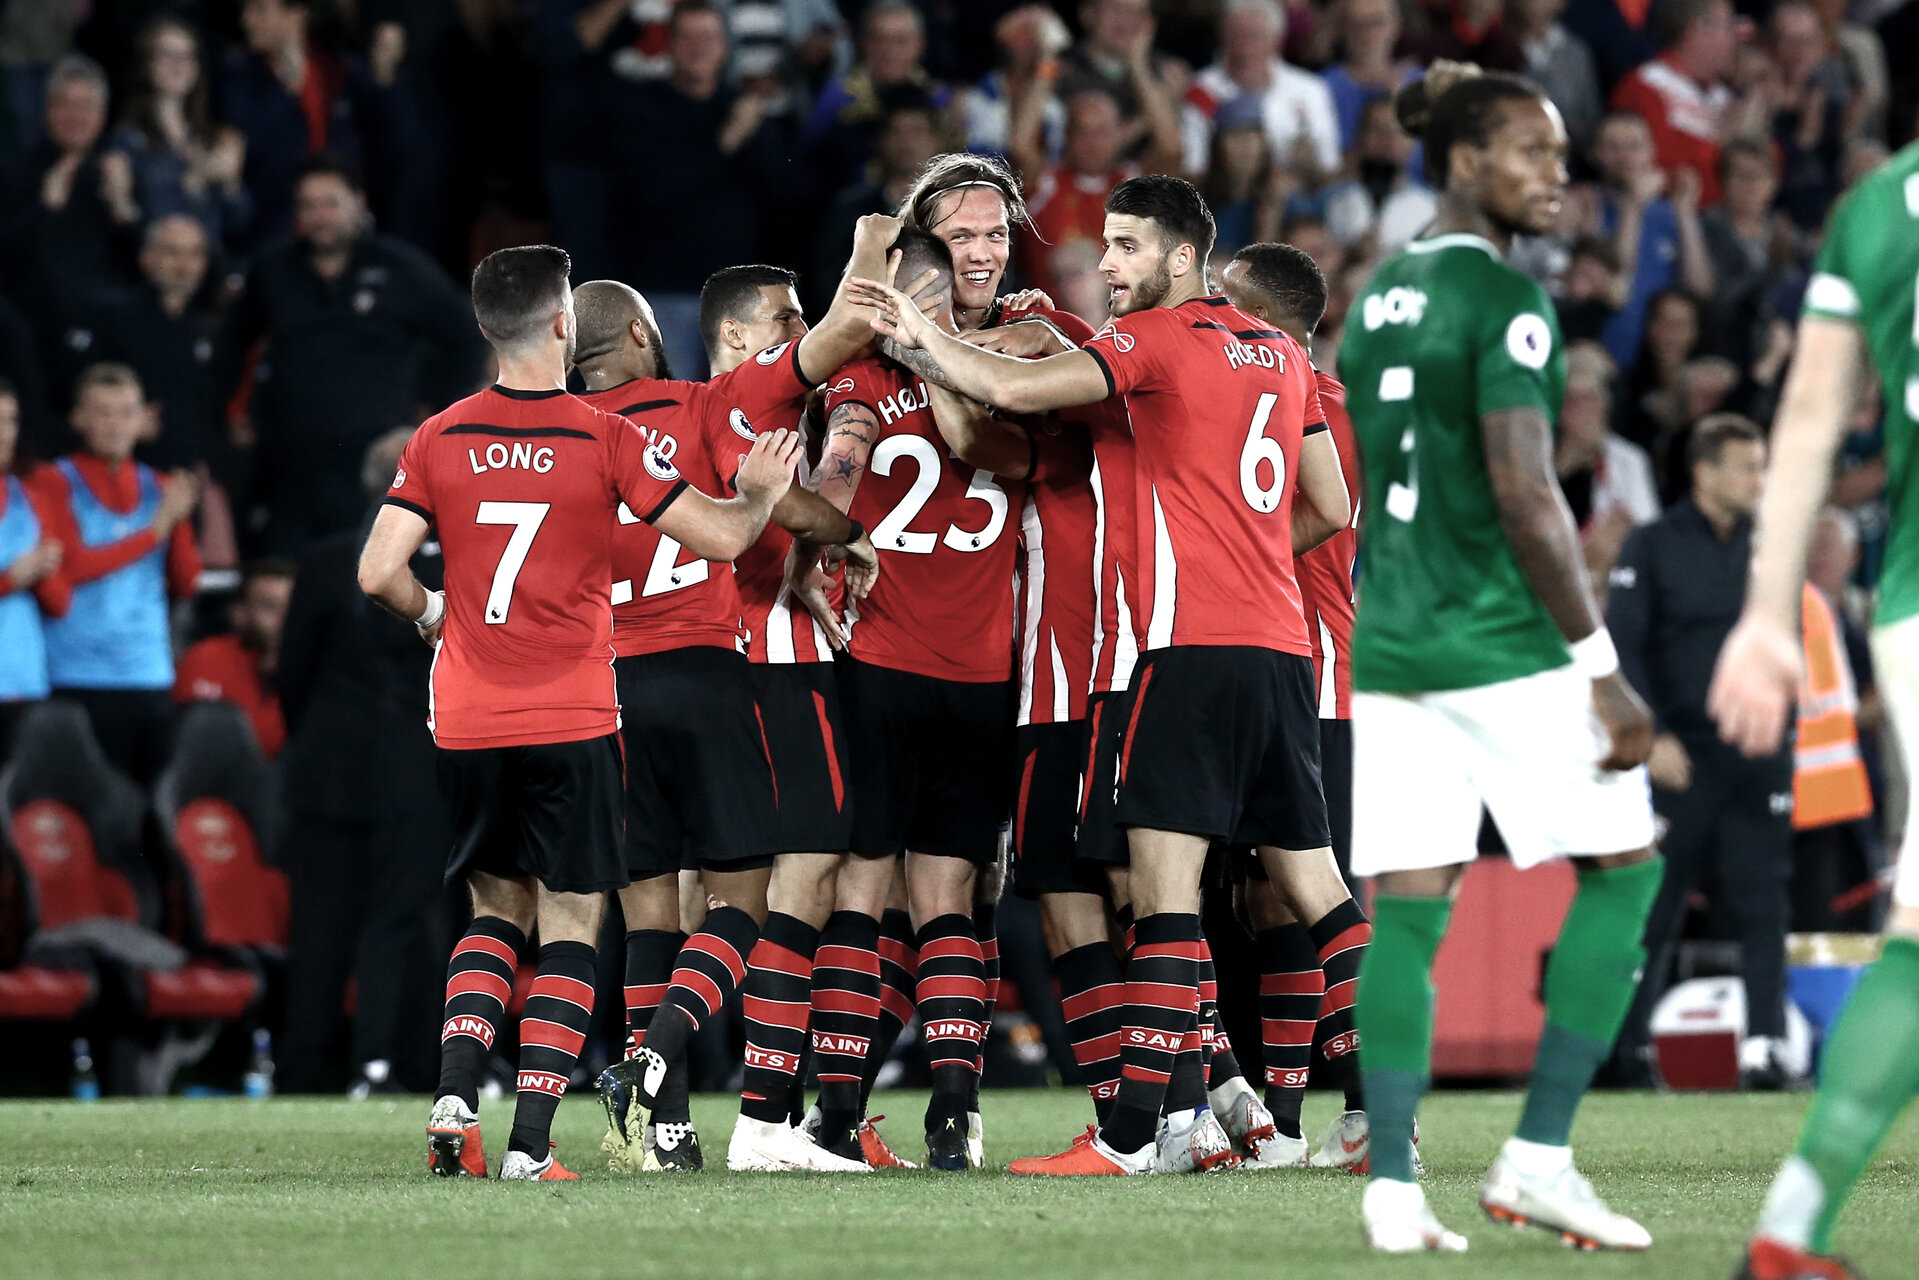 SOUTHAMPTON, ENGLAND - SEPTEMBER 17: Southampton FC players (middle) celebrate after Pierre-Emile H¿jbjerg scores during the Premier League match between Southampton FC and Brighton & Hove Albion at St Mary's Stadium on September 17, 2018 in Southampton, United Kingdom. (Photo by James Bridle - Southampton FC/Southampton FC via Getty Images) SOUTHAMPTON, ENGLAND - SEPTEMBER 17: Southampton FC players (middle) celebrate after Pierre-Emile Højbjerg scores during the Premier League match between Southampton FC and Brighton & Hove Albion at St Mary's Stadium on September 17, 2018 in Southampton, United Kingdom. (Photo by James Bridle - Southampton FC/Southampton FC via Getty Images)